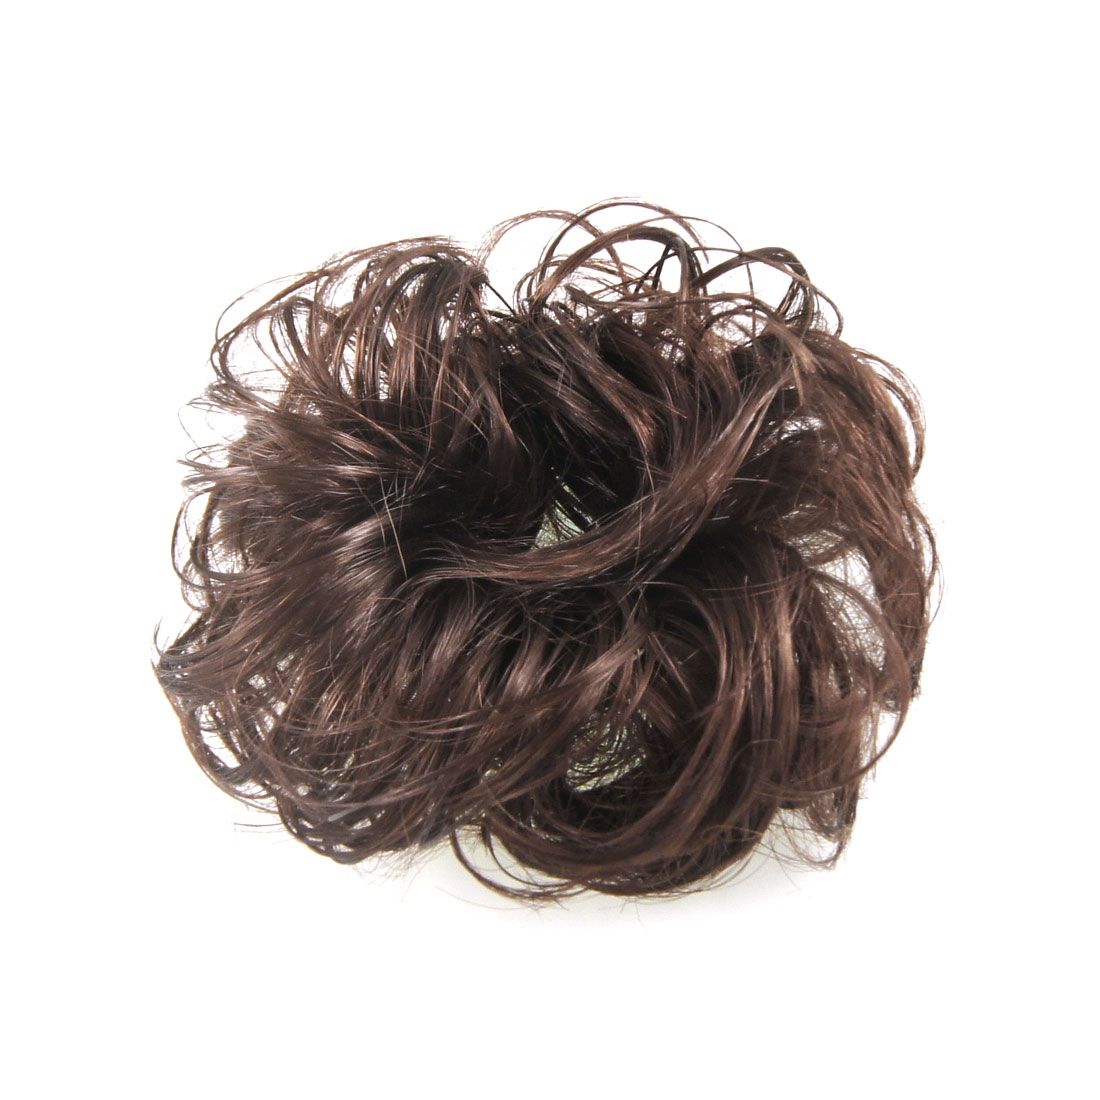 Unique Bargains Light Brown Faux Hair Wedding Elastic Band Curly Hairpiece Wig Bun